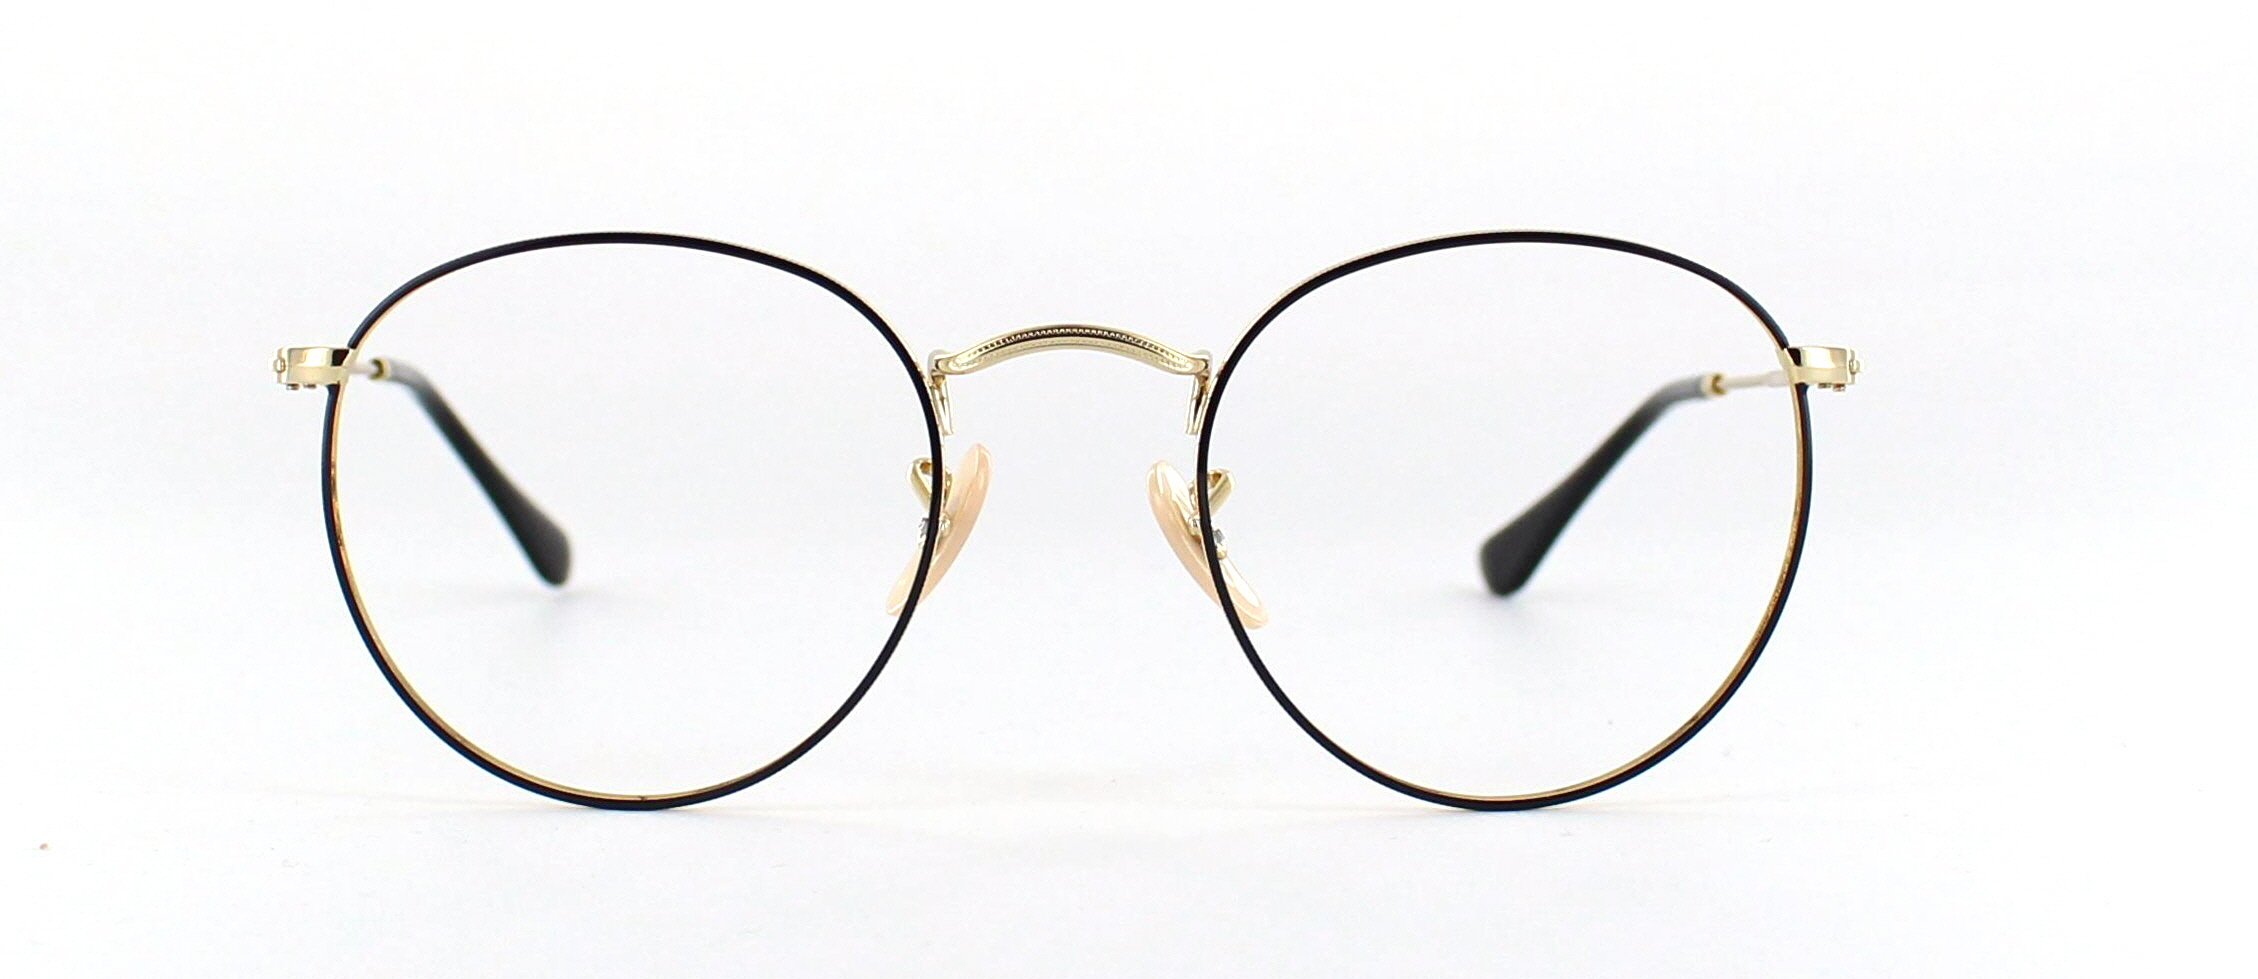 Ray Ban round metal front